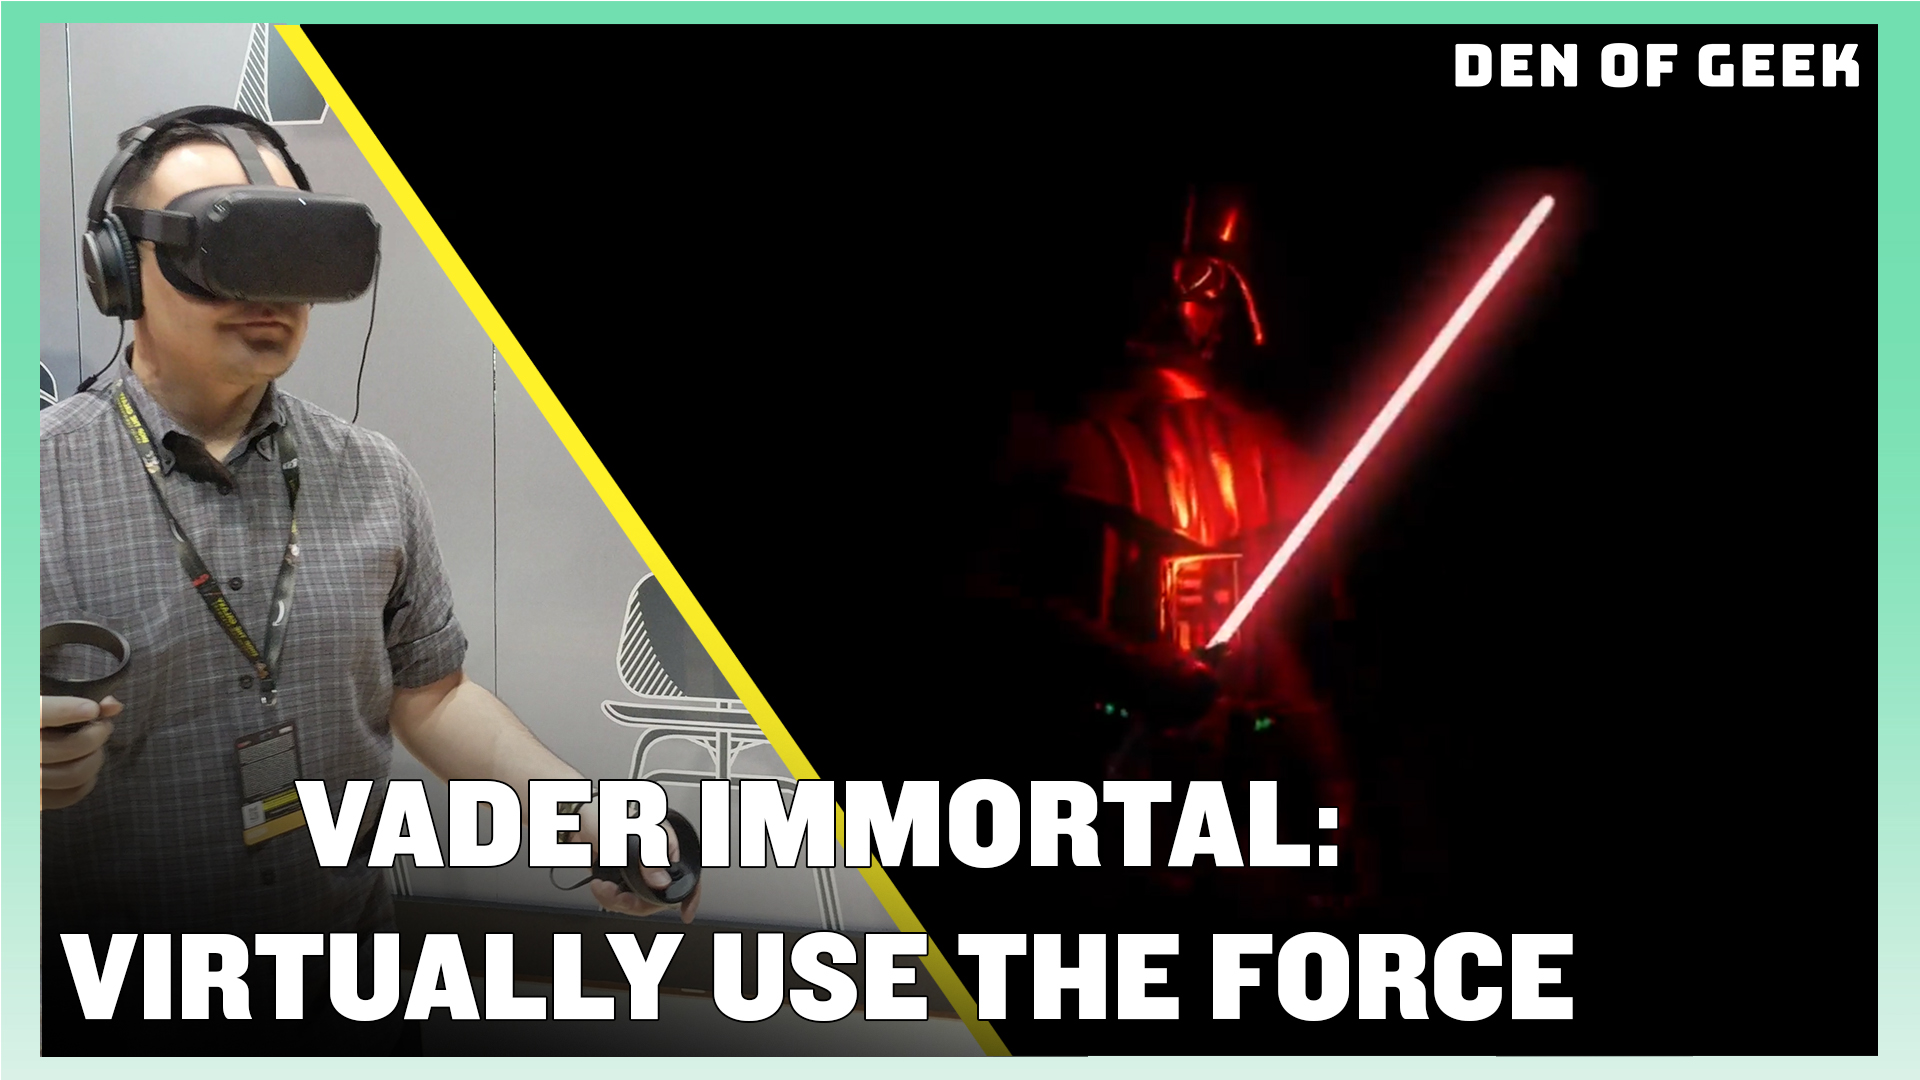 Vader Immortal: Virtually Use The Force